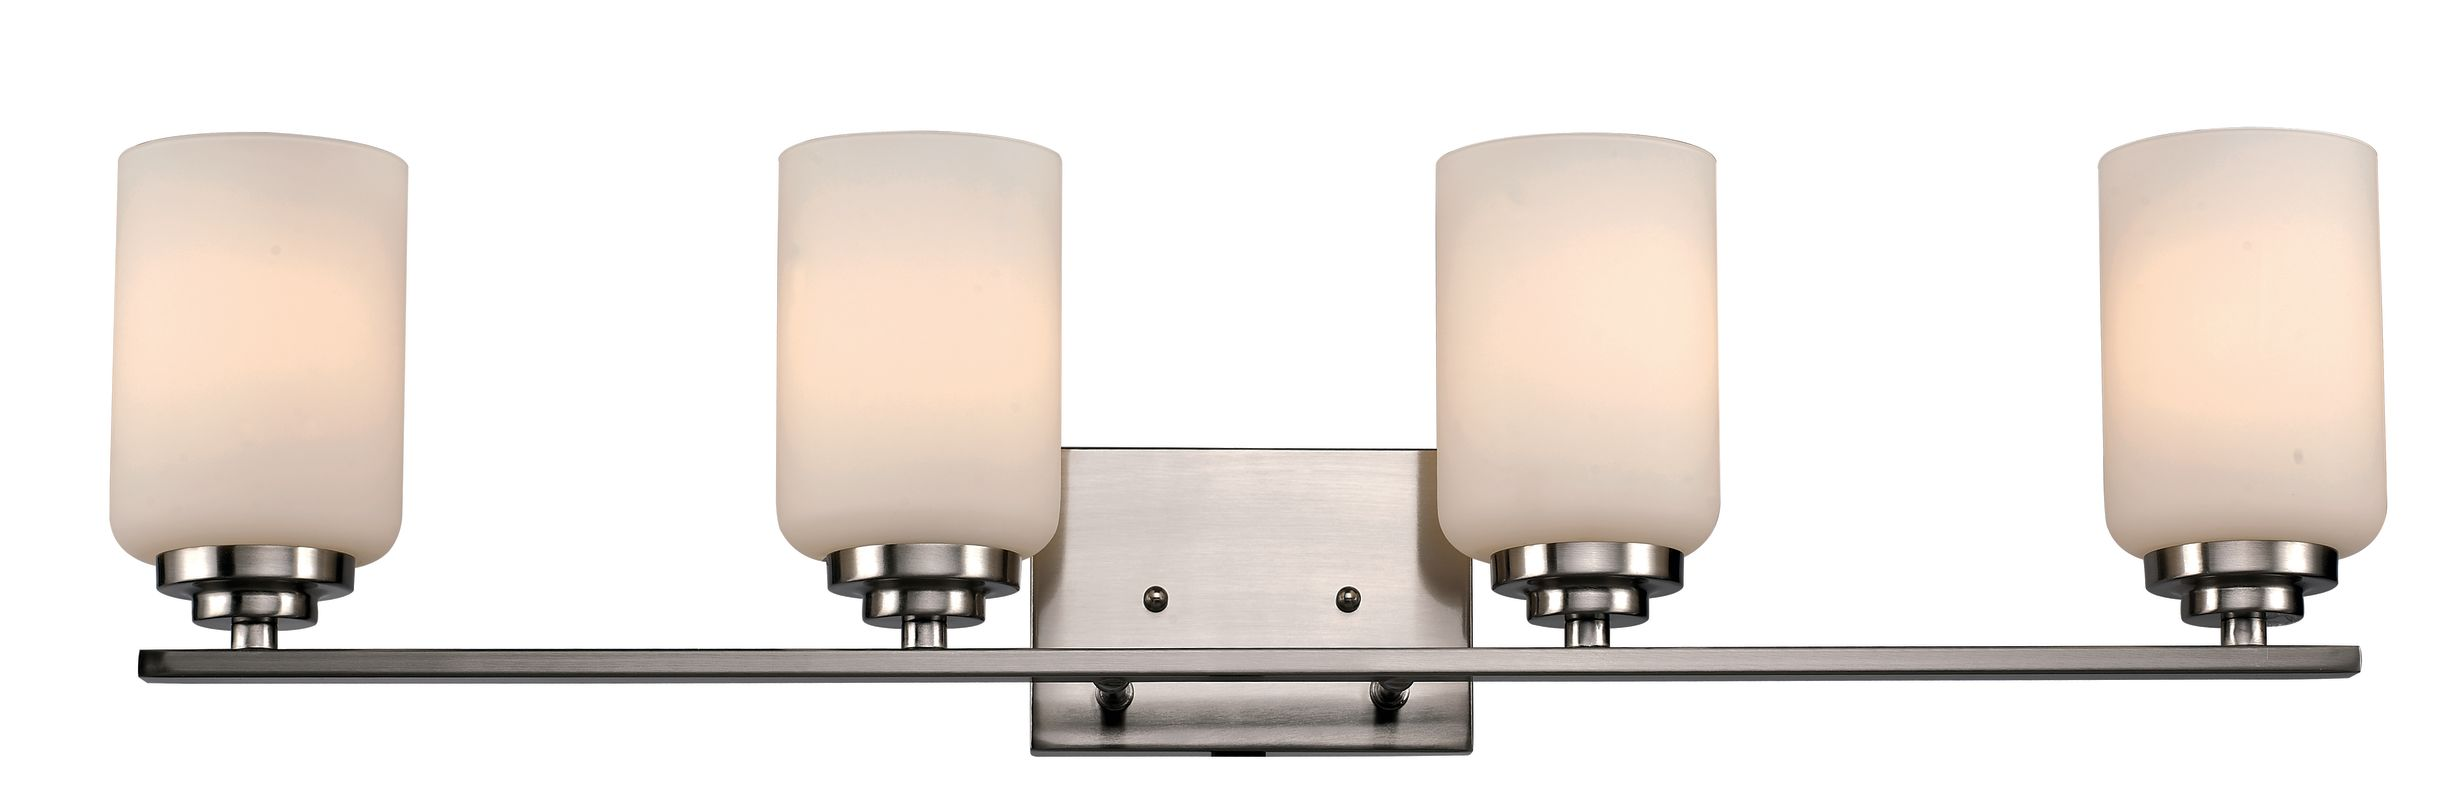 Trans Globe Lighting 70524 Mod Space 4 Light Bathroom Vanity Light Sale $138.51 ITEM: bci2541875 ID#:70524 ROB UPC: 736916635851 :